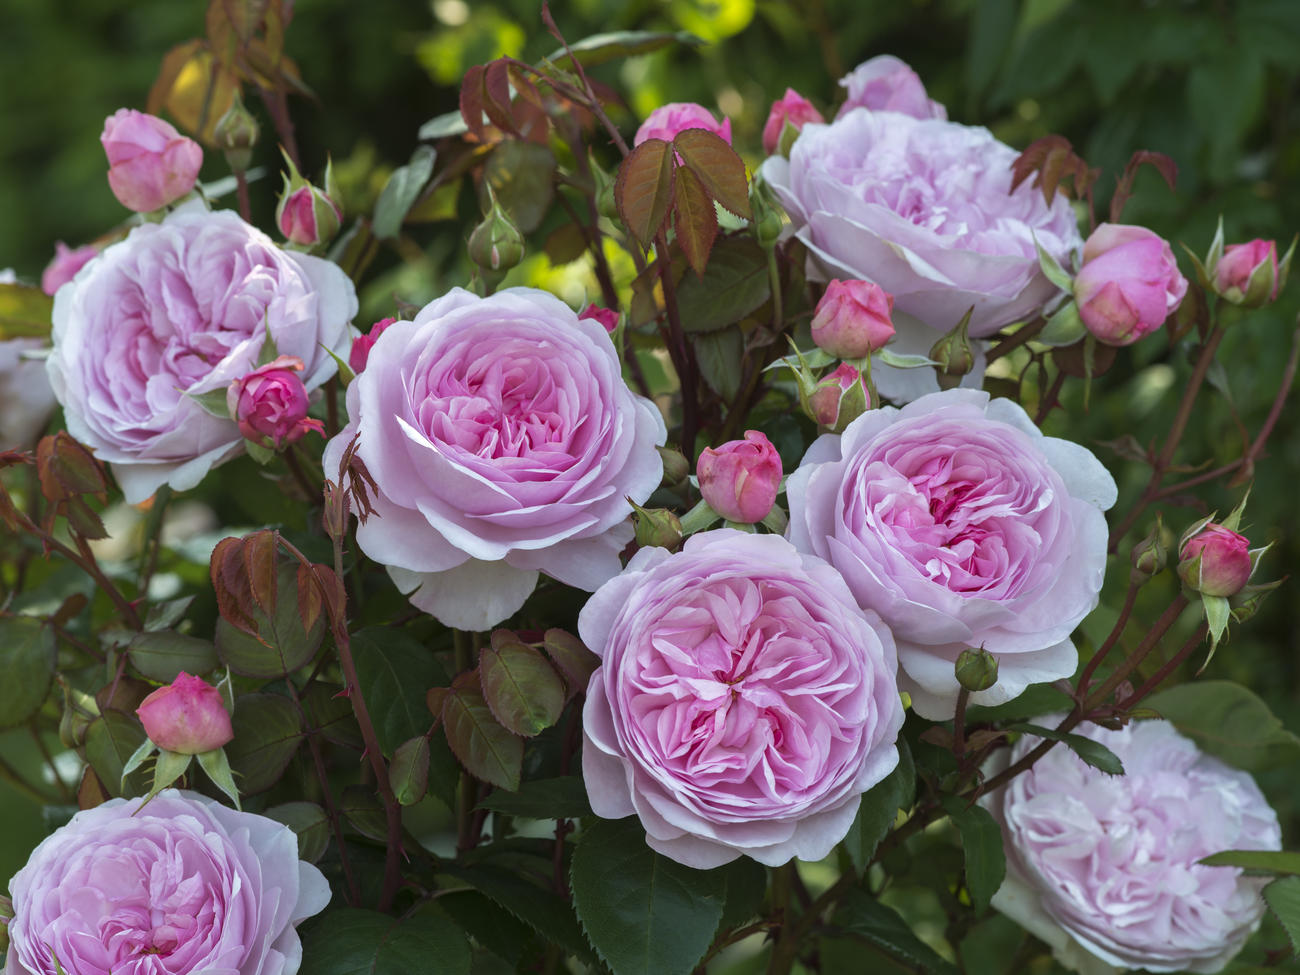 Endearing Roses Sunset Magazine How To Deadhead Roses Australia How To Deadhead Roses Uk How To Deadhead Roses Guide To Gardening houzz-03 How To Deadhead Roses